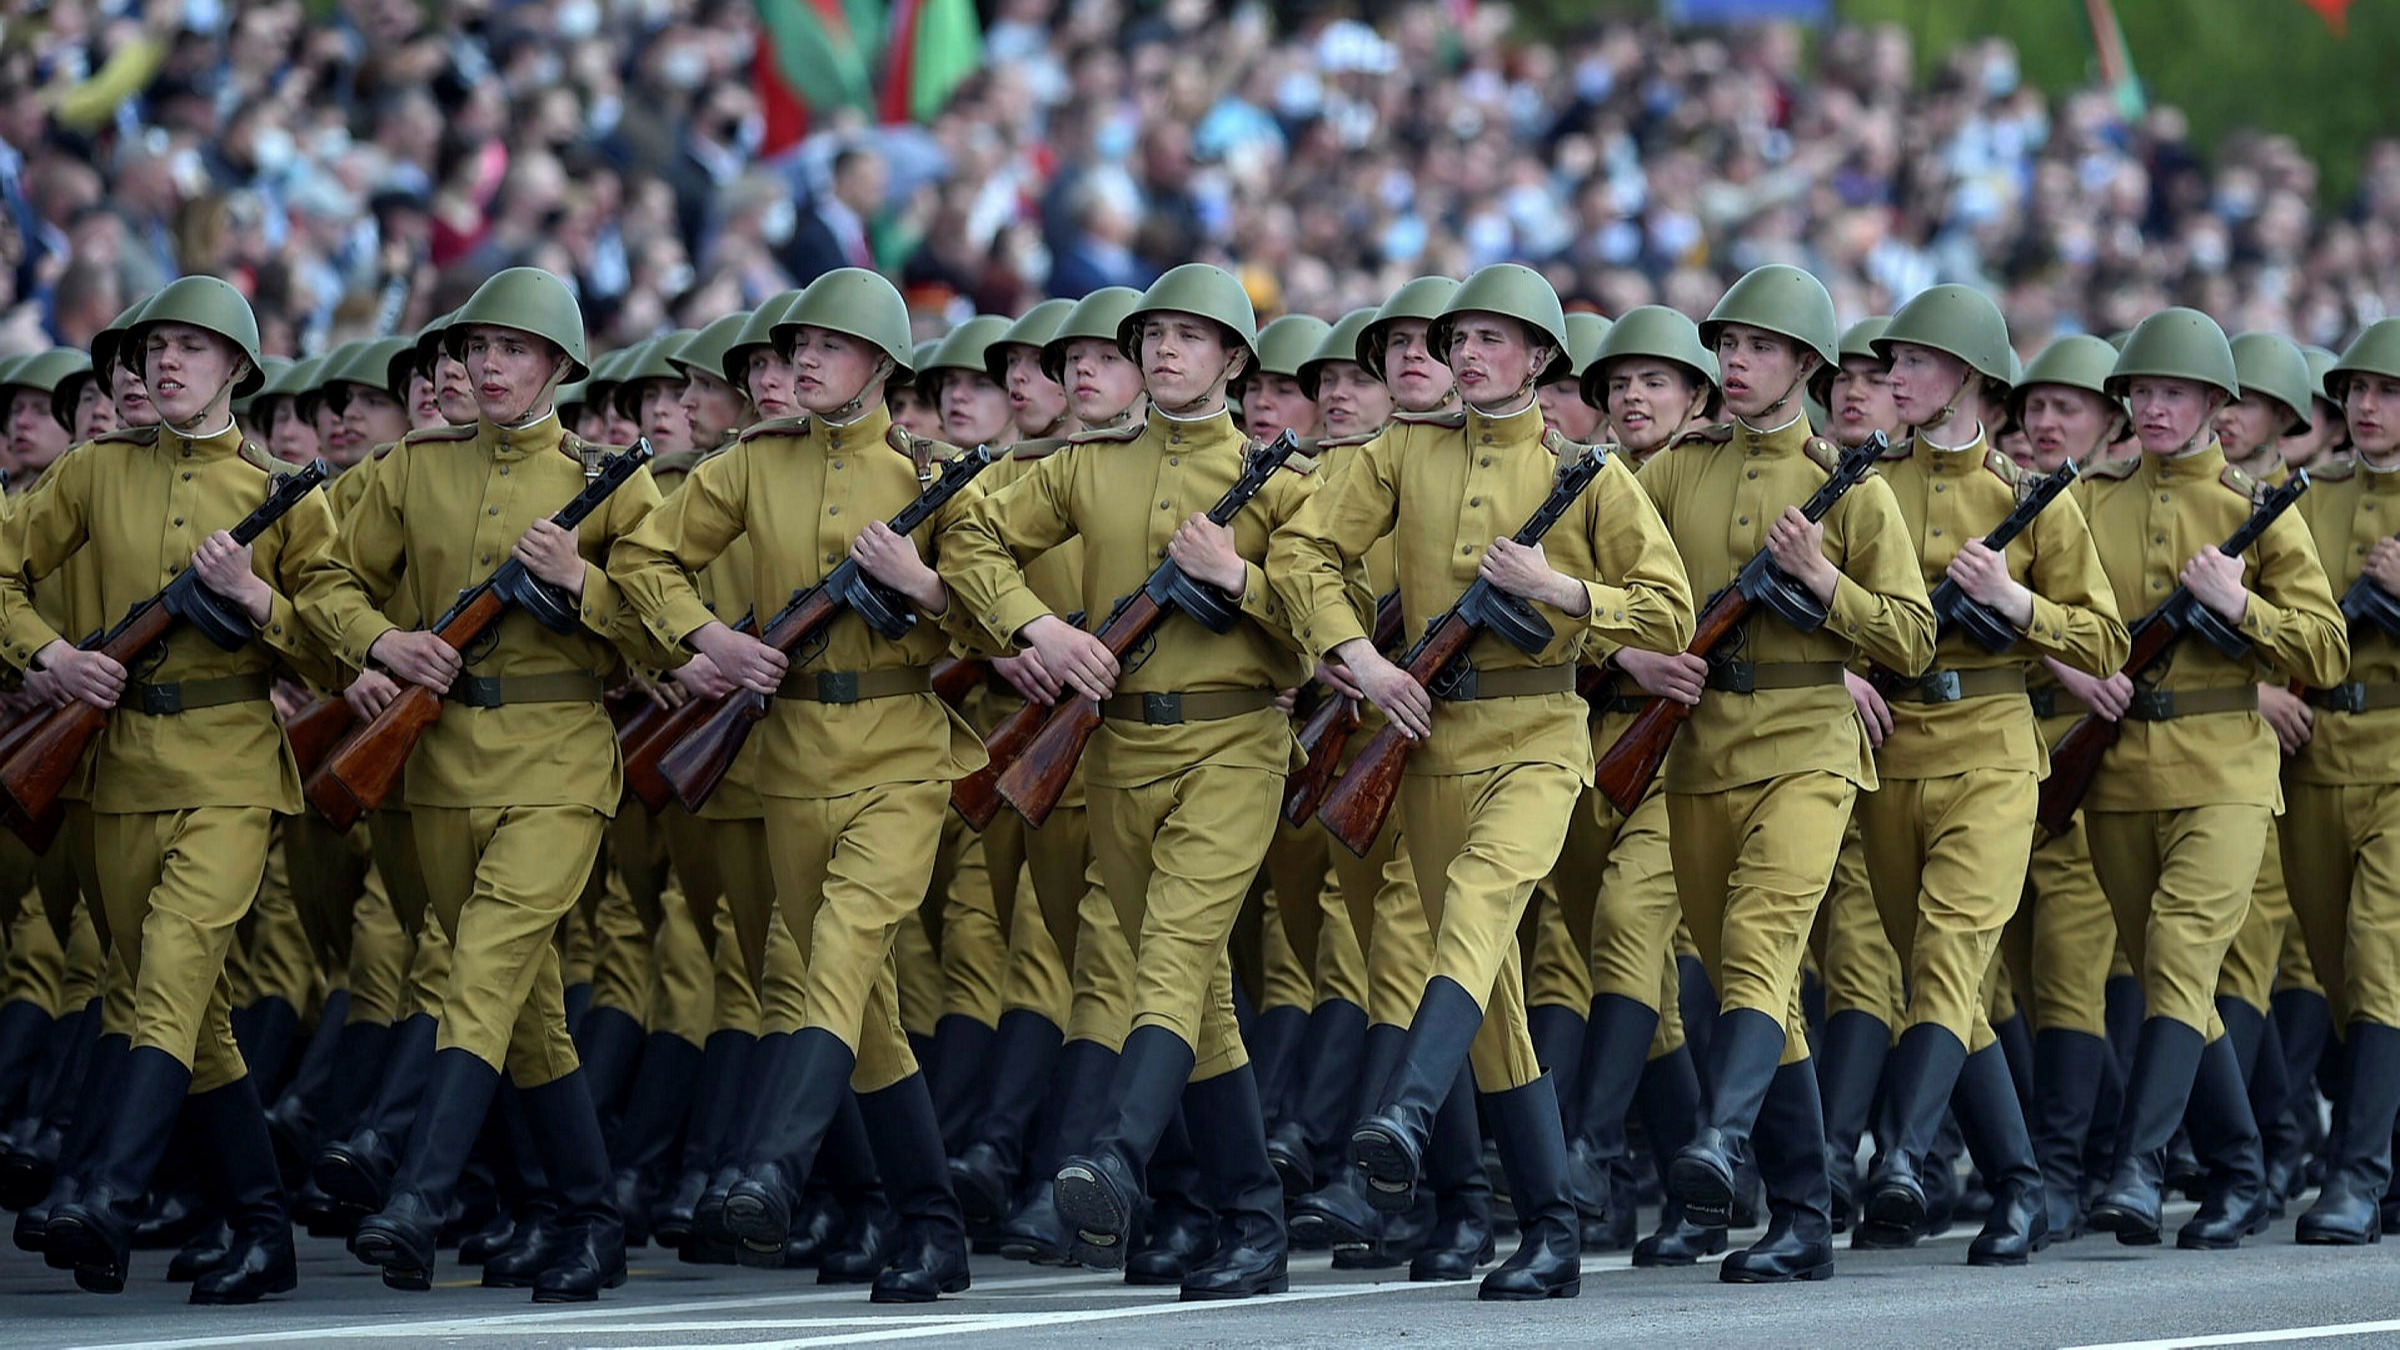 Belarus Holds Military Parade Despite Coronavirus Risk Financial Times